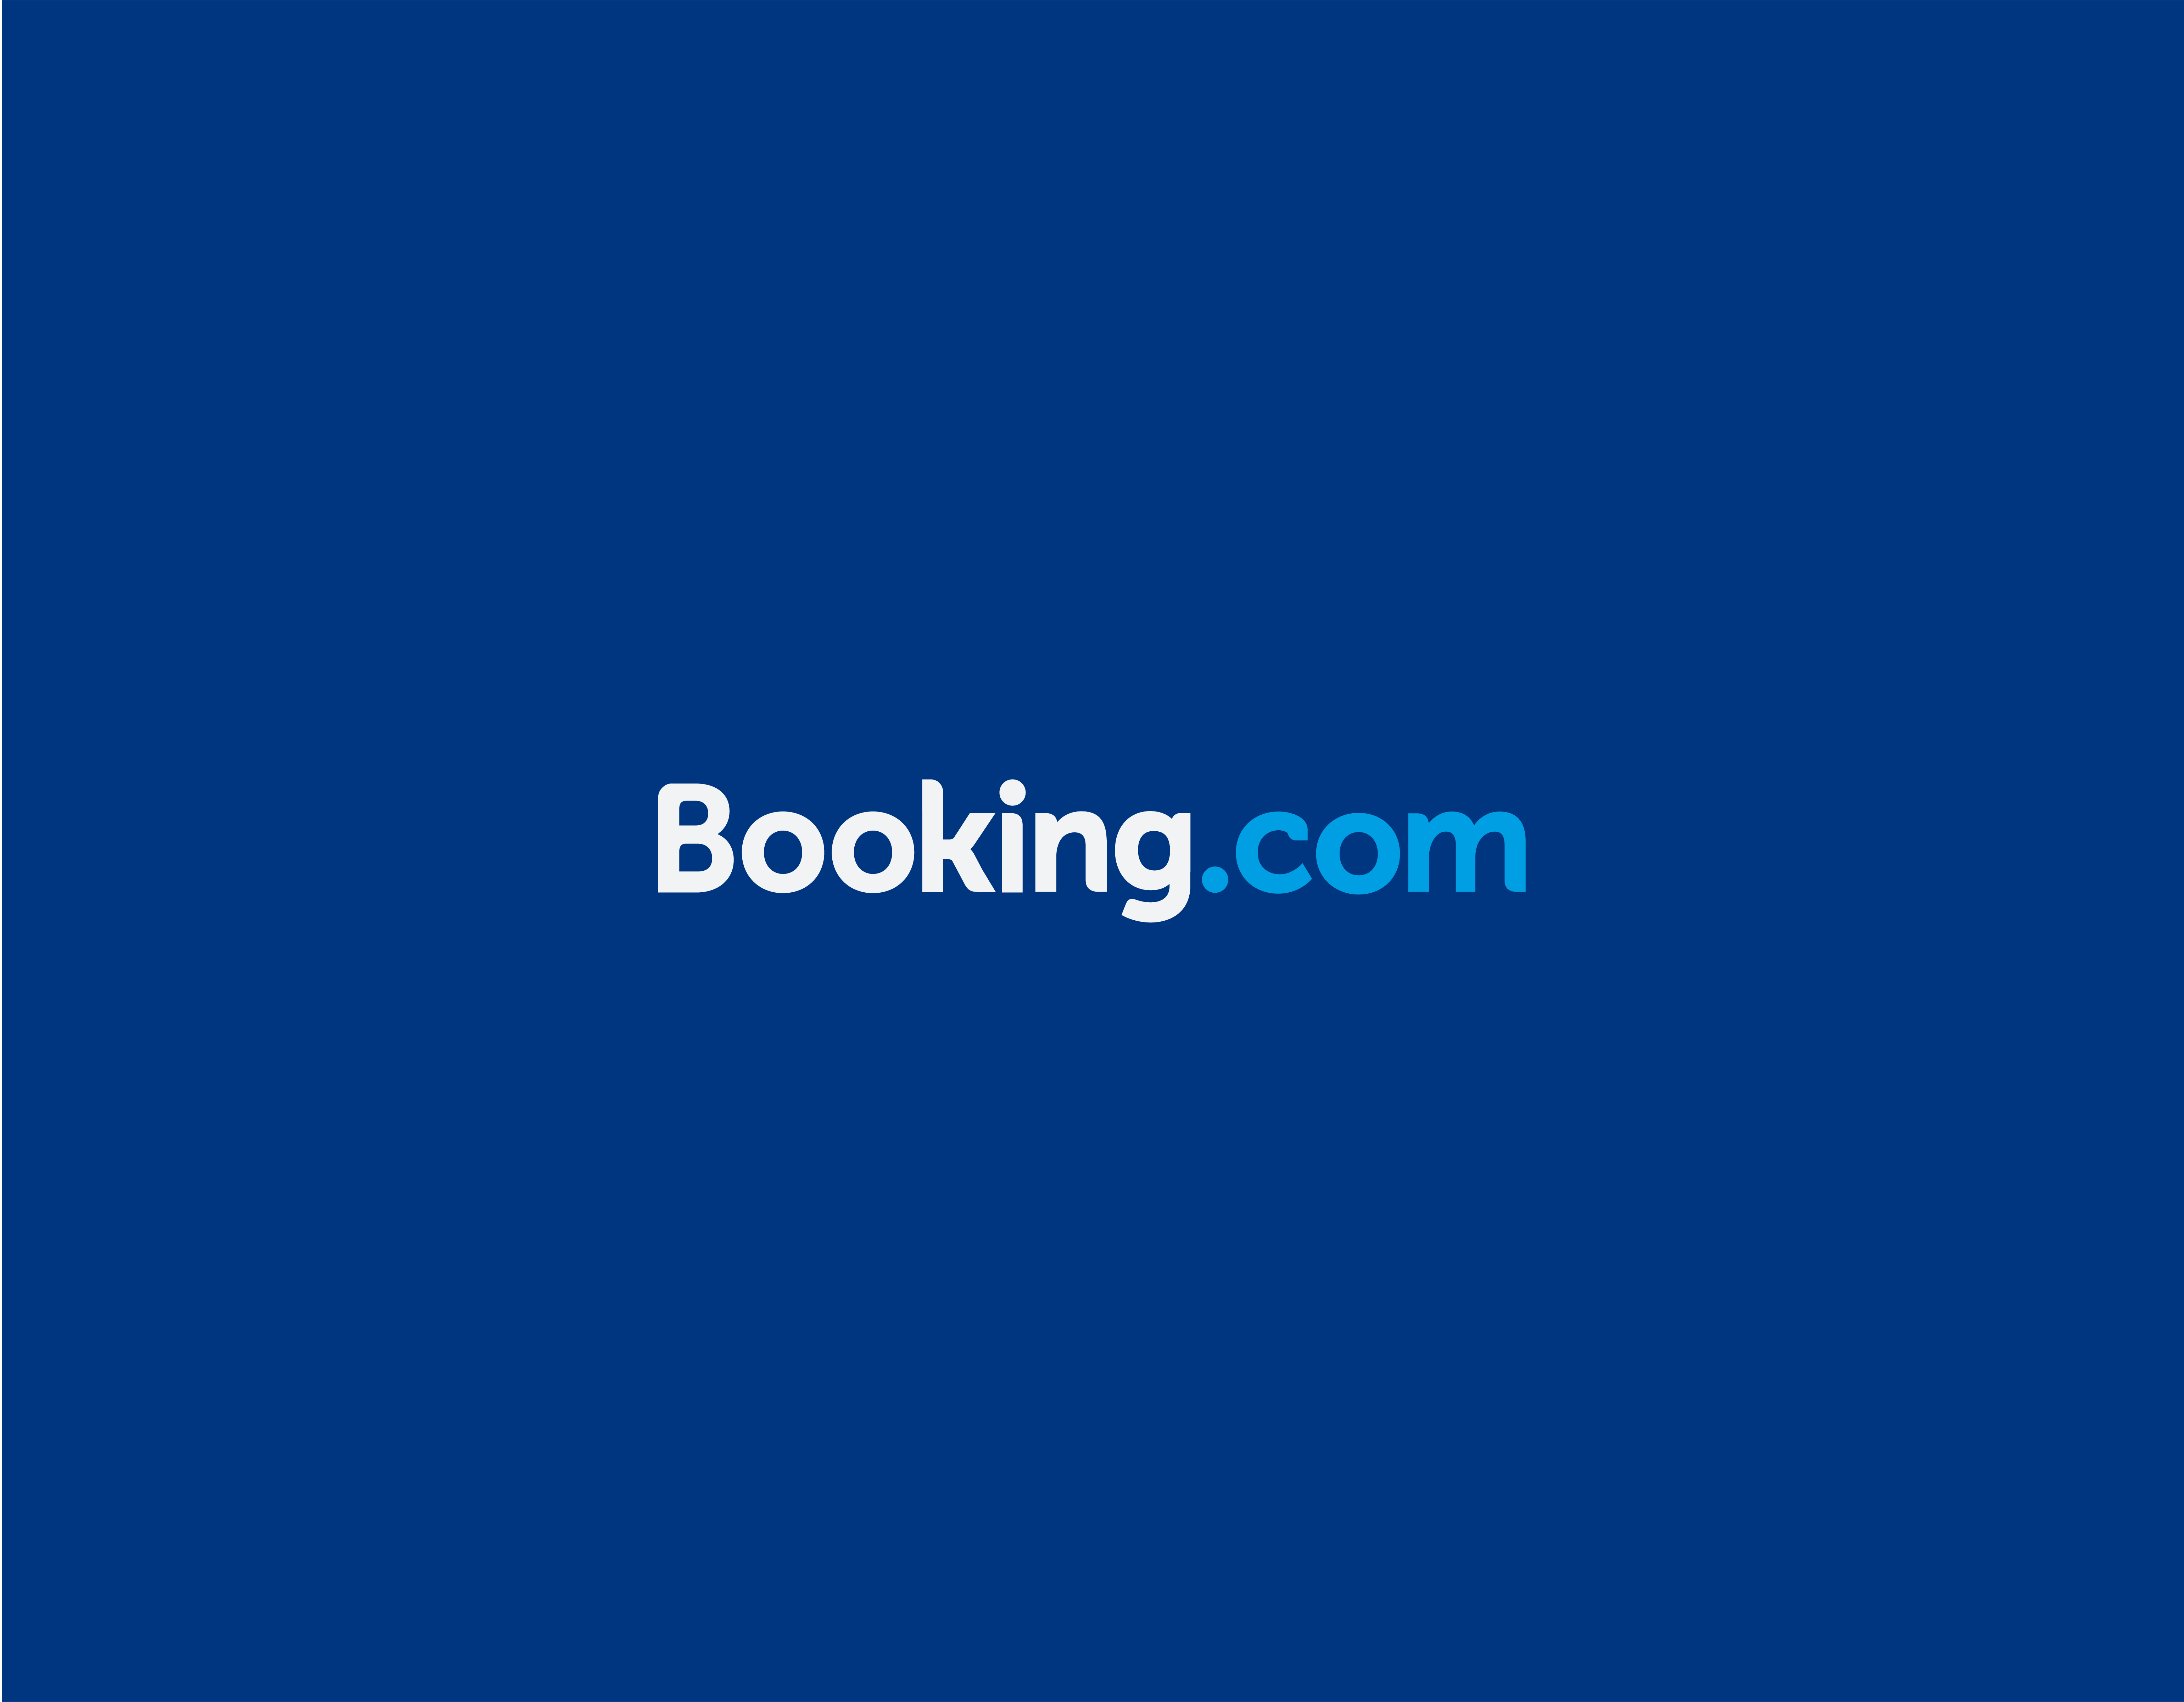 Booking.com Corporate Identity